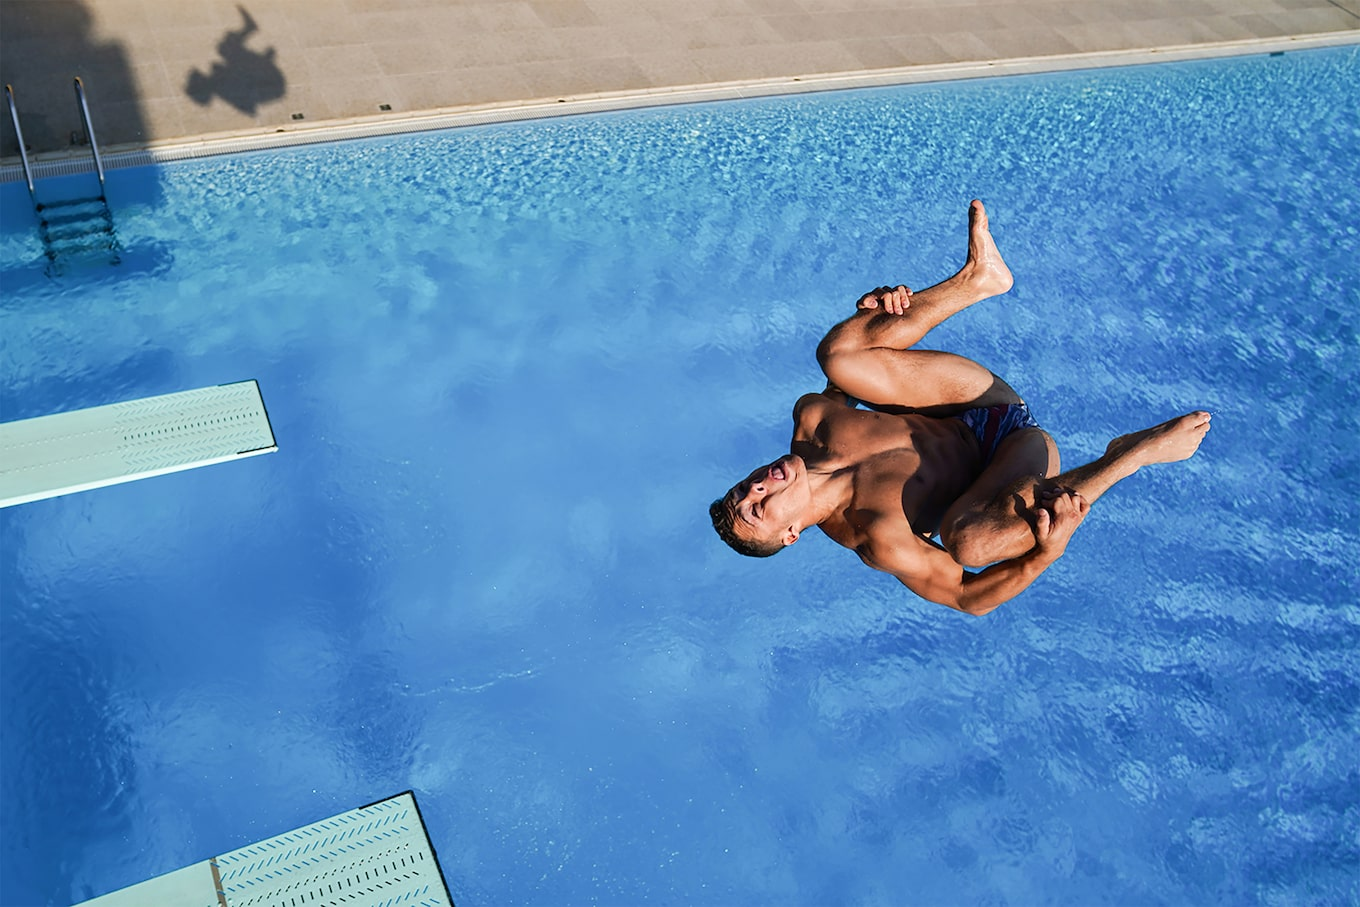 aleksandra szmigiel sony alpha 9m2 view from above of a swimmer jumping in a pool